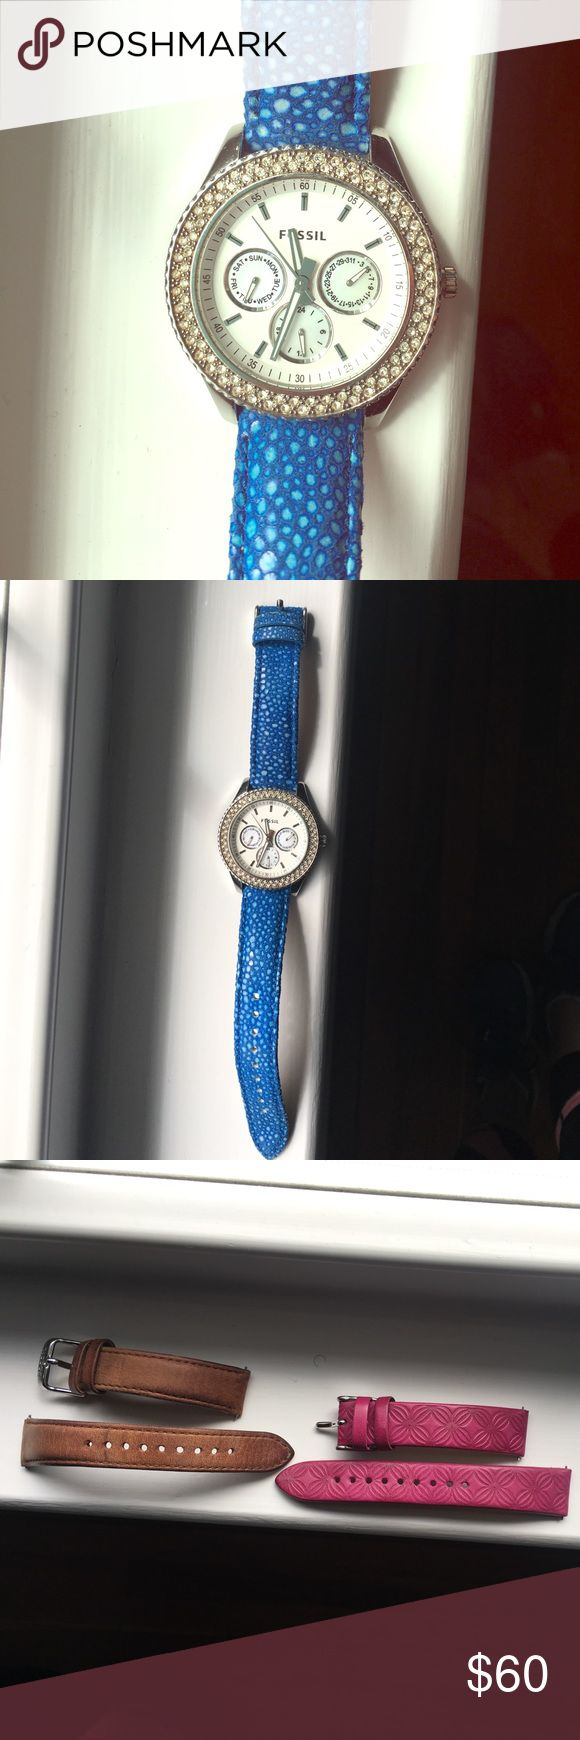 Fossil watch with 3 different color band options! Cute fossil watch with blue, pink and brown bands! Needs new watch battery! Fossil Accessories Watches